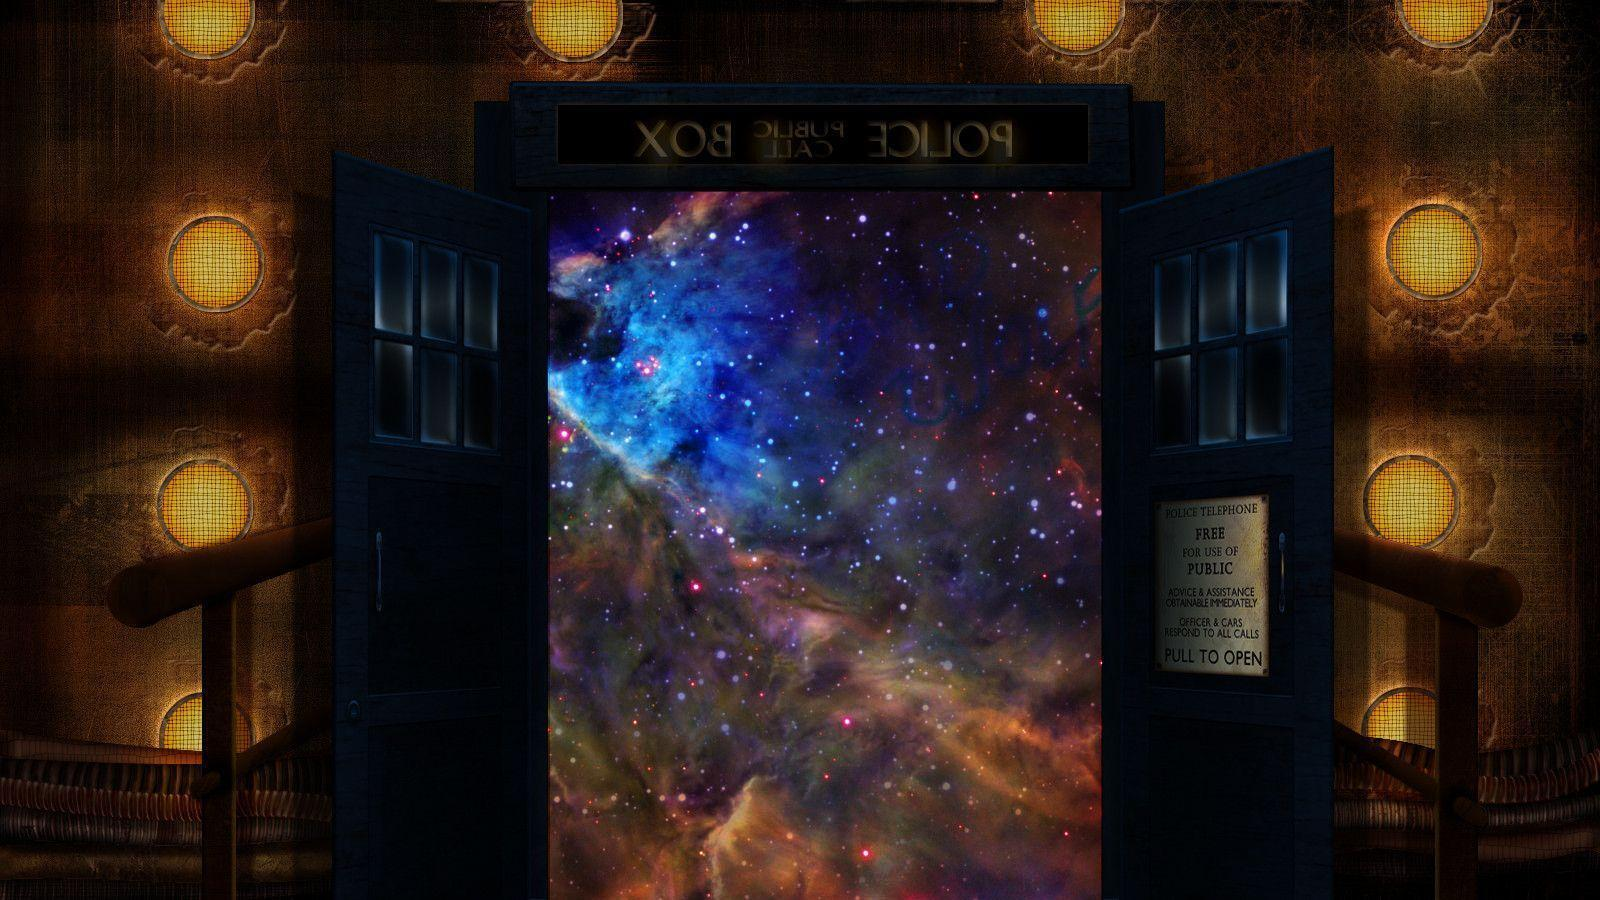 tardis images hd wallpaper - photo #31